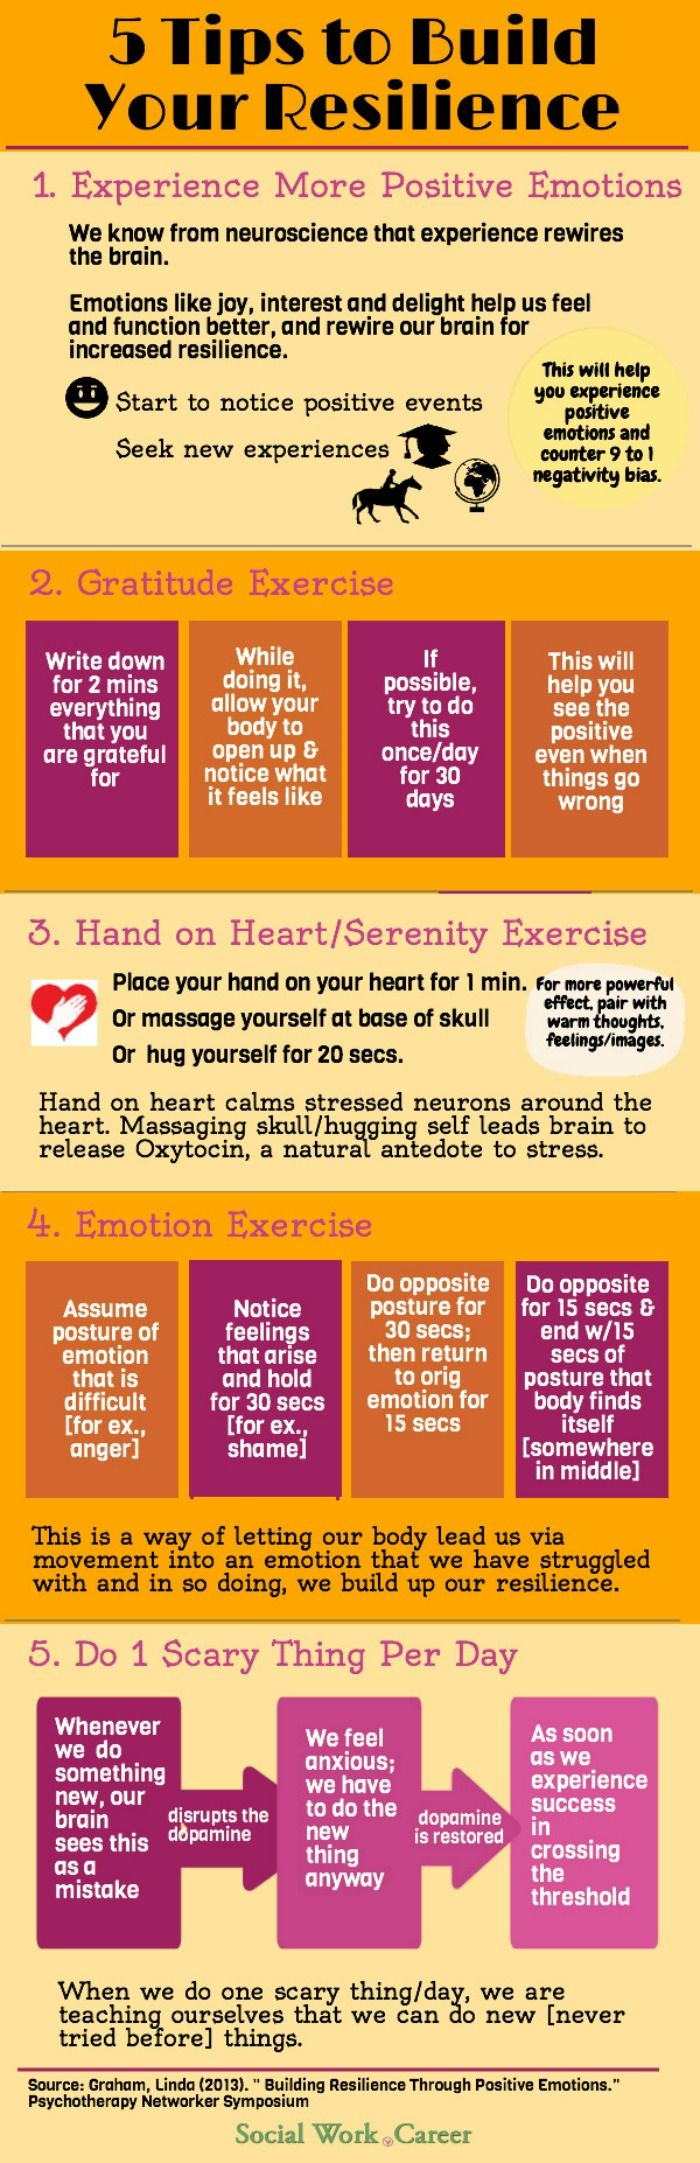 How to Increase Your Resiliency